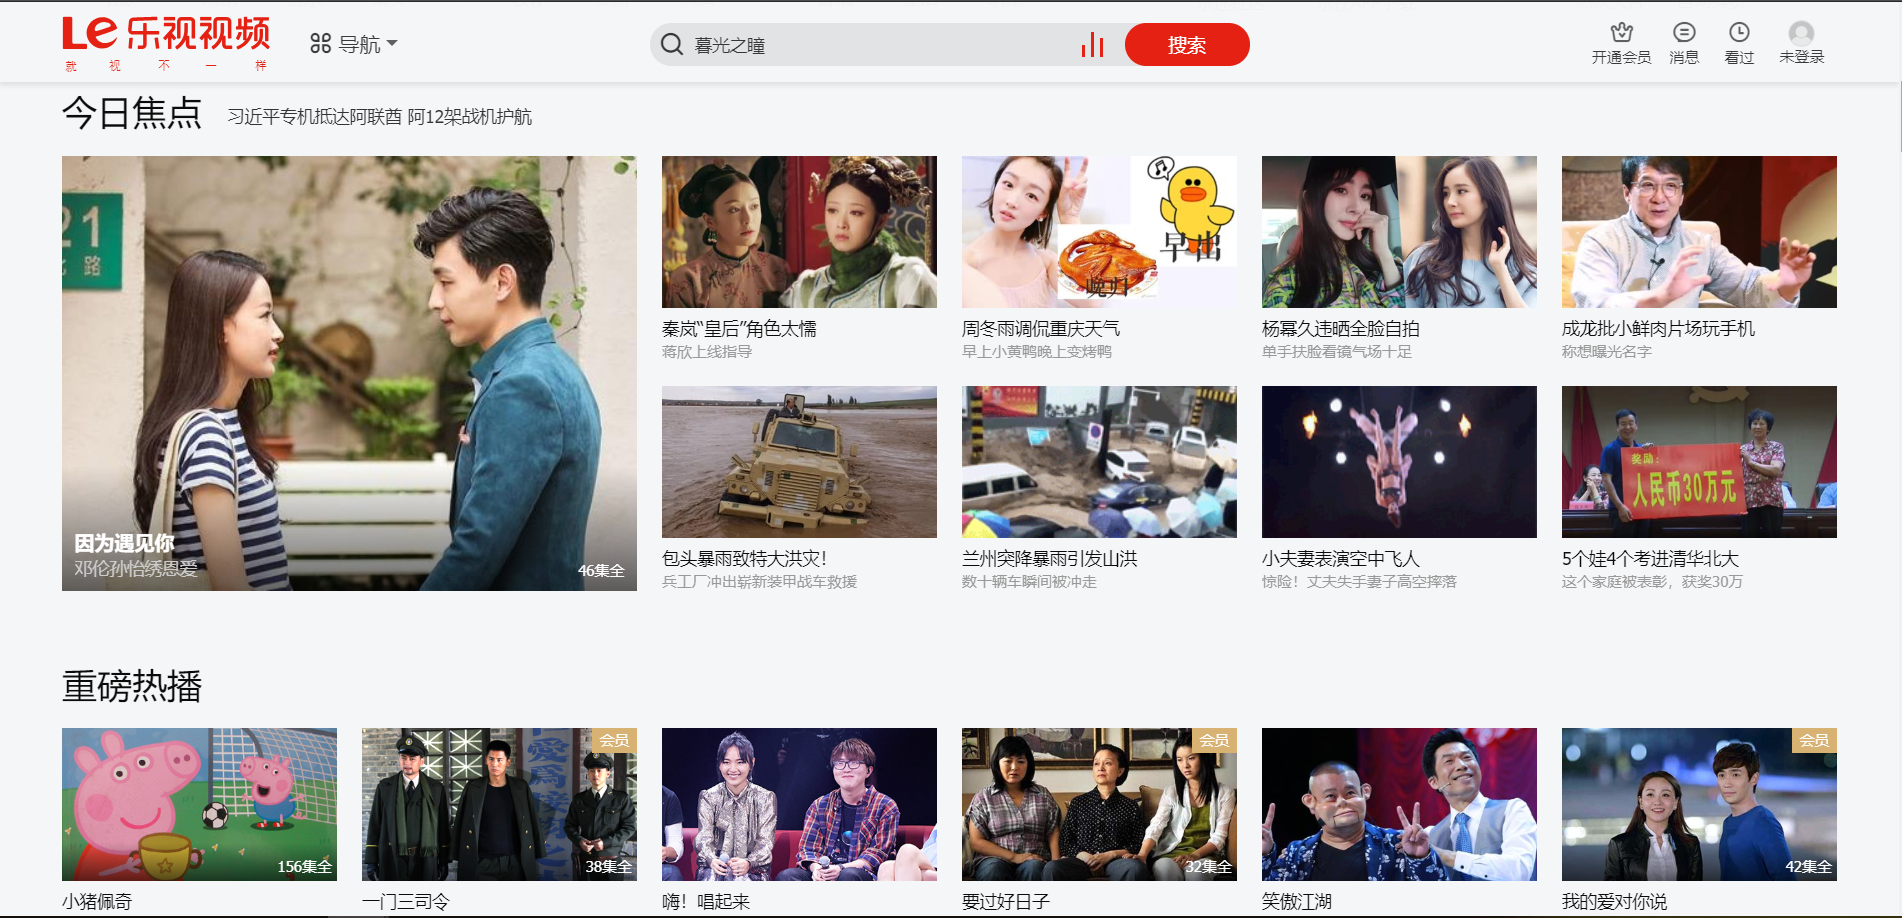 Le china video platform site